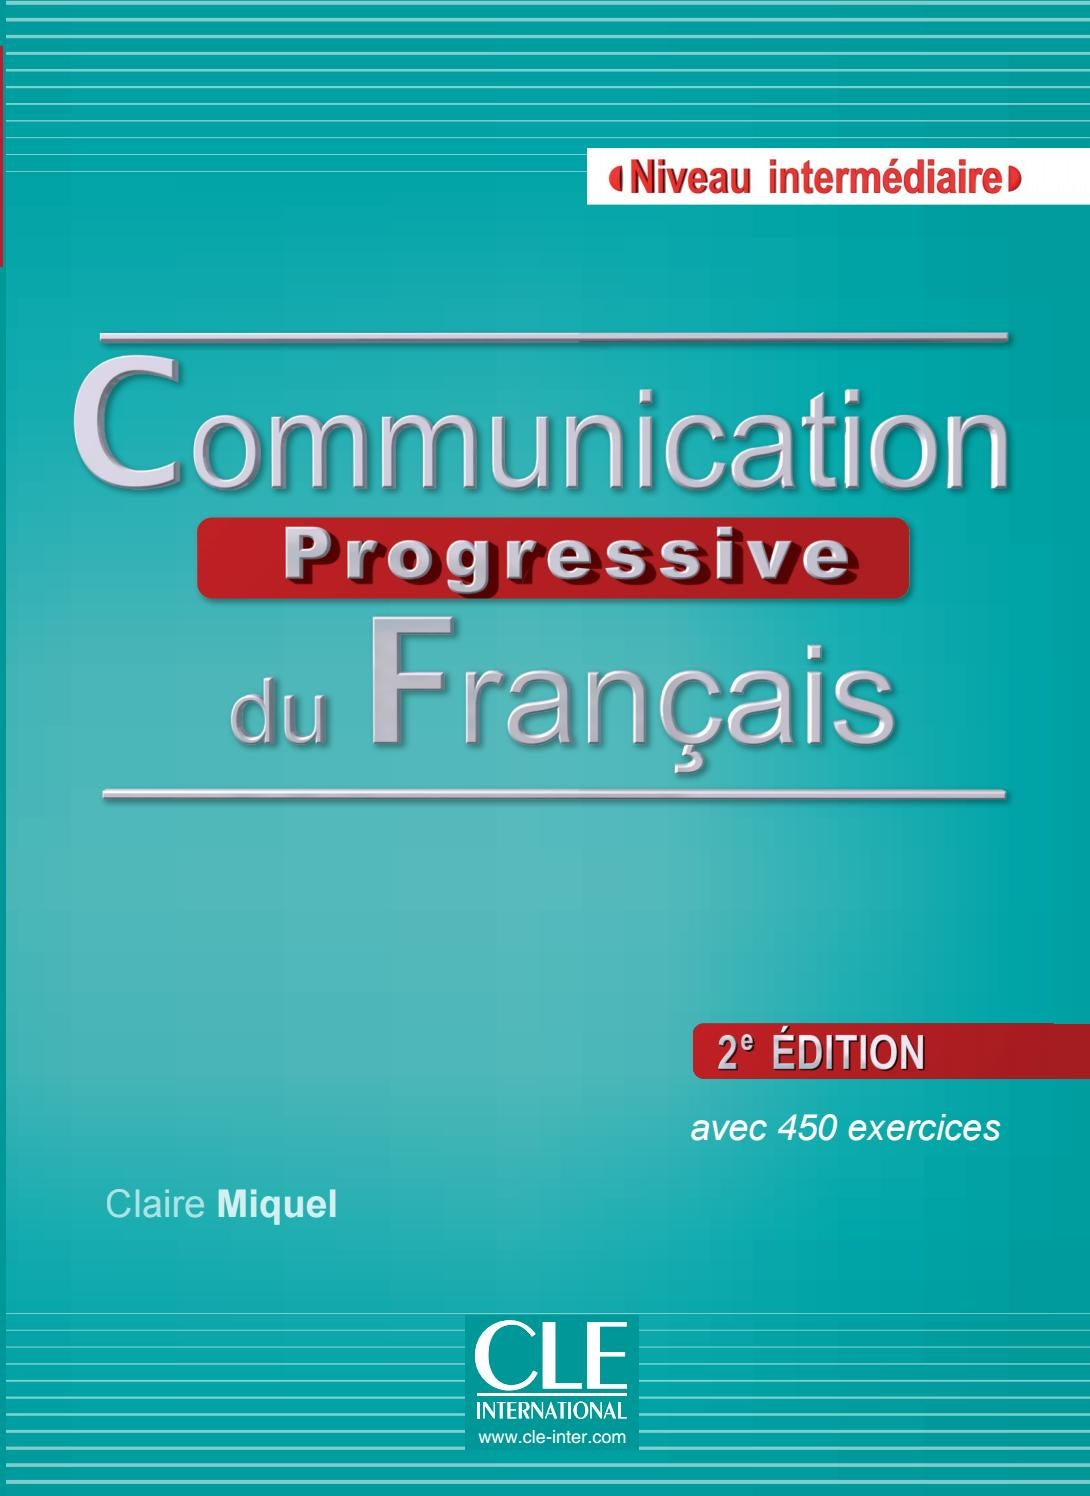 communication progressive du fran u00e7ais interm u00e9diaire by cle